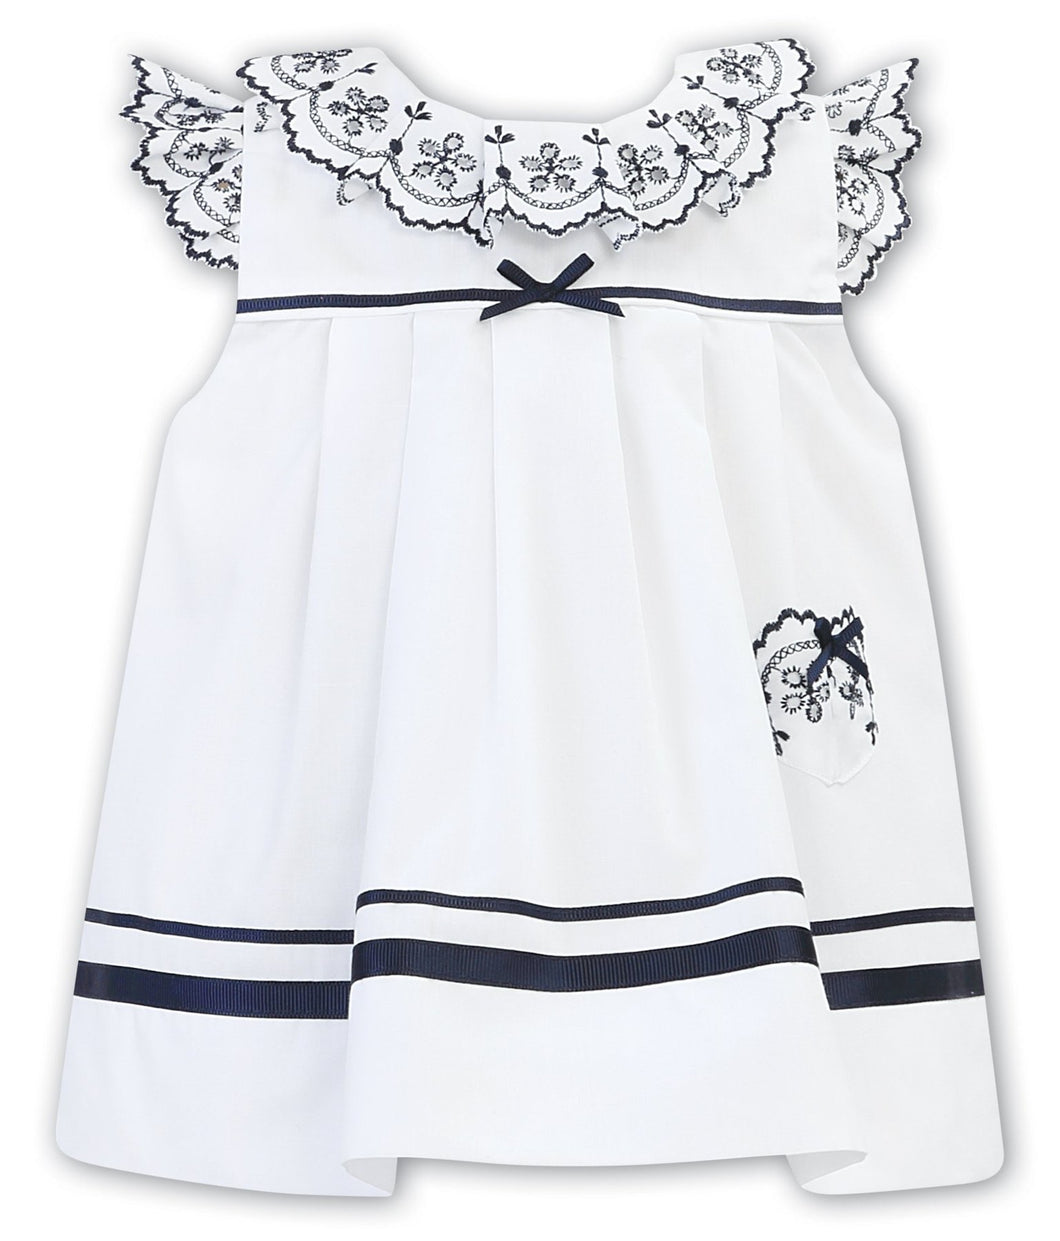 Girls Dress with Embroidered Detailed Collar, Cap Sleeves and Pocket, Ribbon and Bow Trim on Waist Ribbon Trim on Hemline